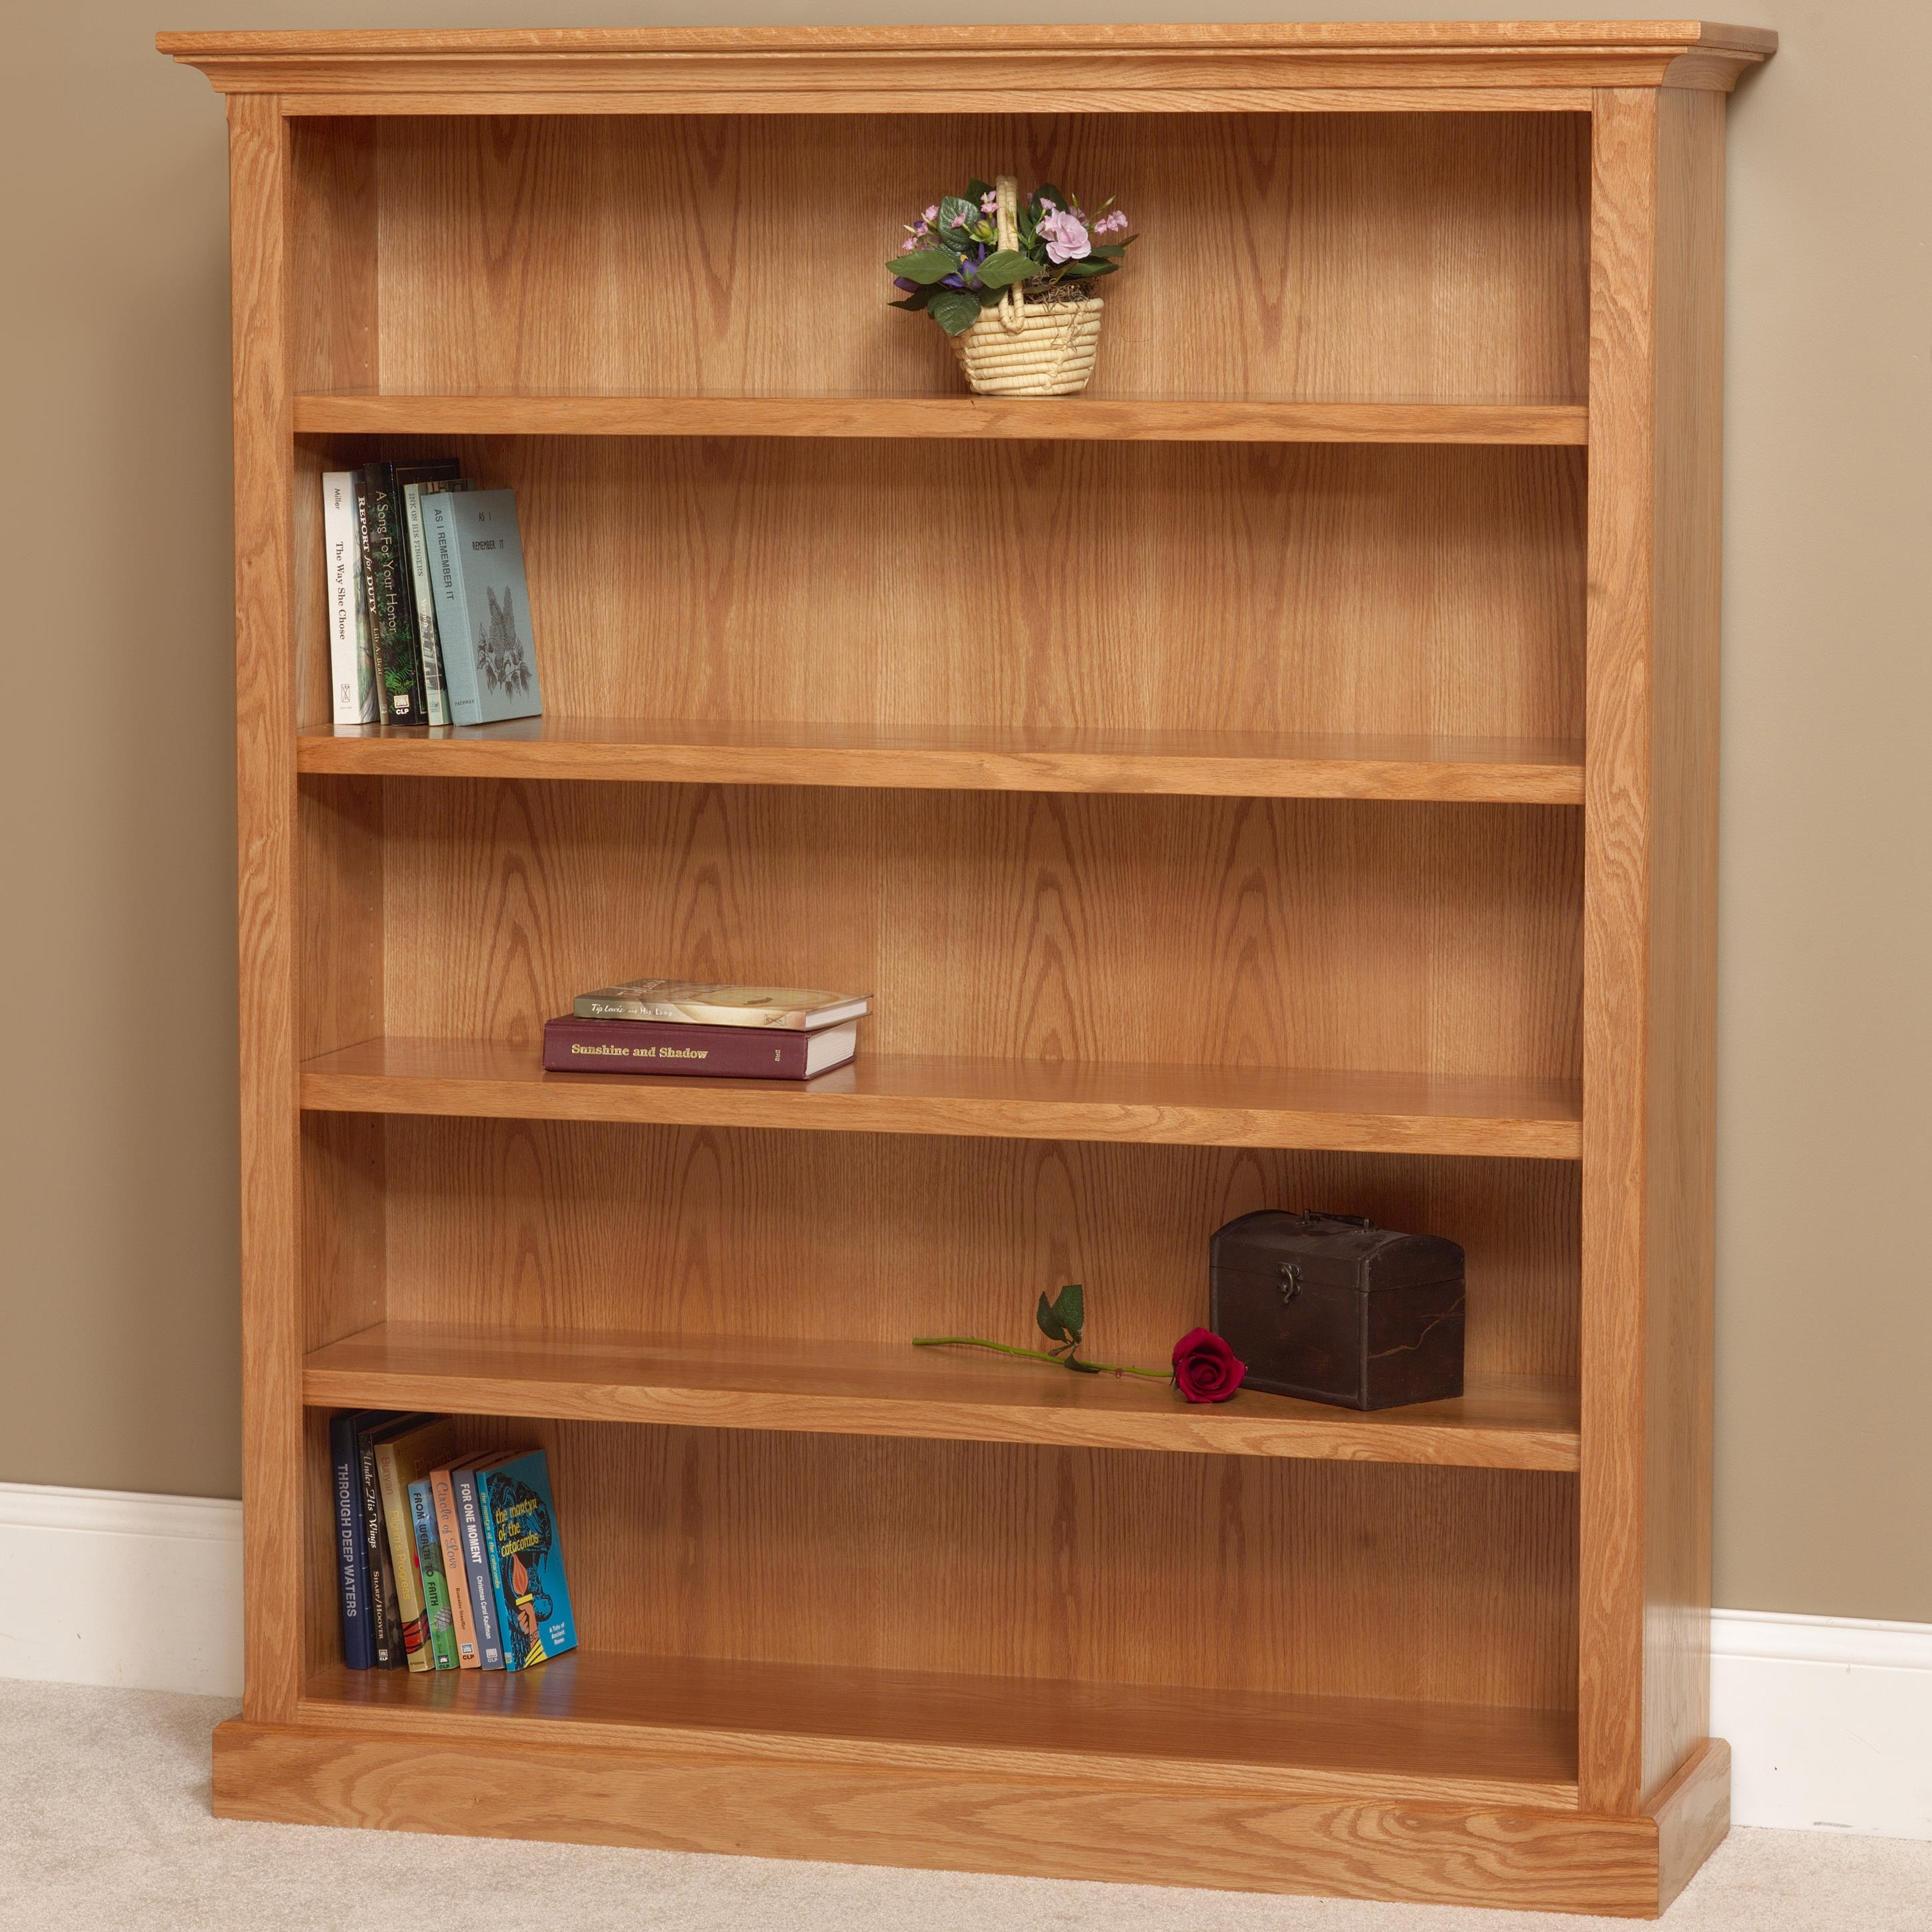 Wonder Wood Bookcases Customizable Country Lane Bookcase by Wonder Wood at Saugerties Furniture Mart